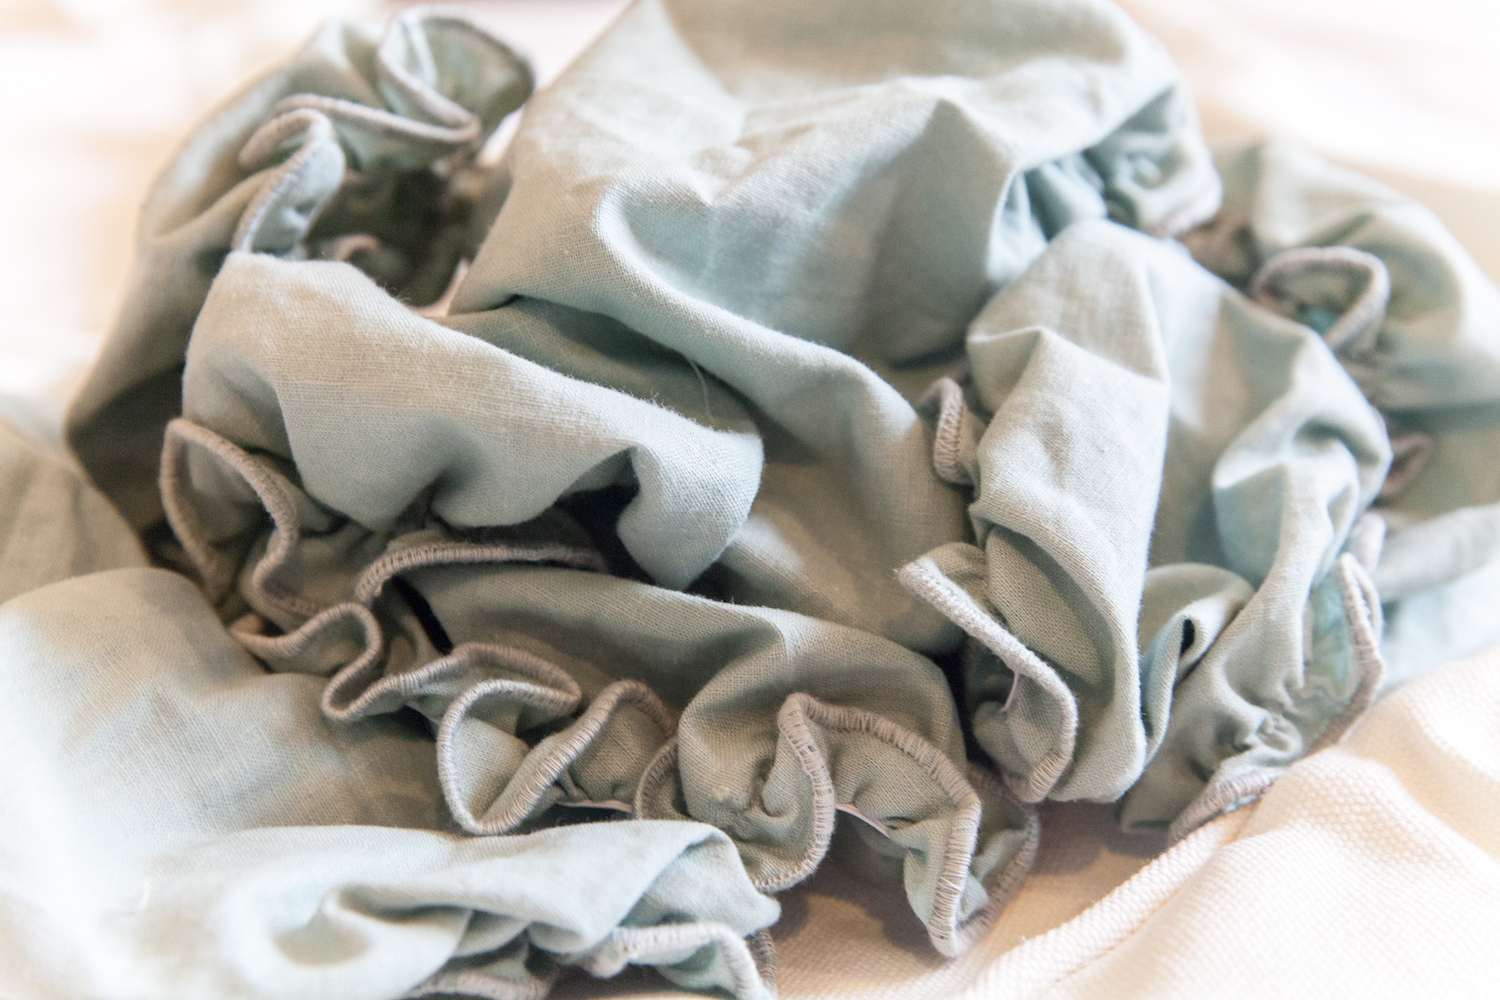 Nowhere & Everywhere Zero Waste Plastic Free Kits Recycled Linen Cotton Produce Bags Bowl Covers Bread Bags Environmentalism #plasticfree